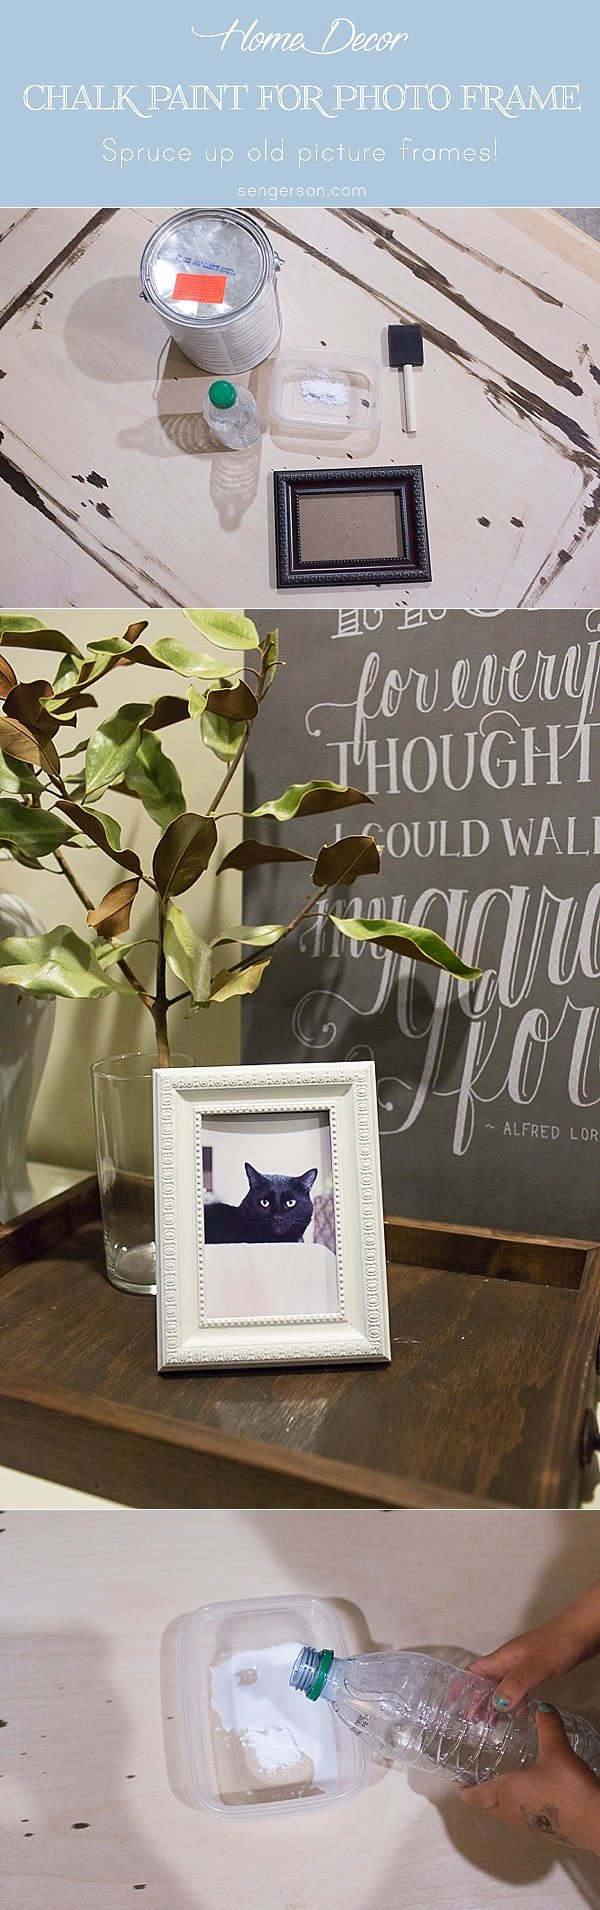 diy chalk frame_0007